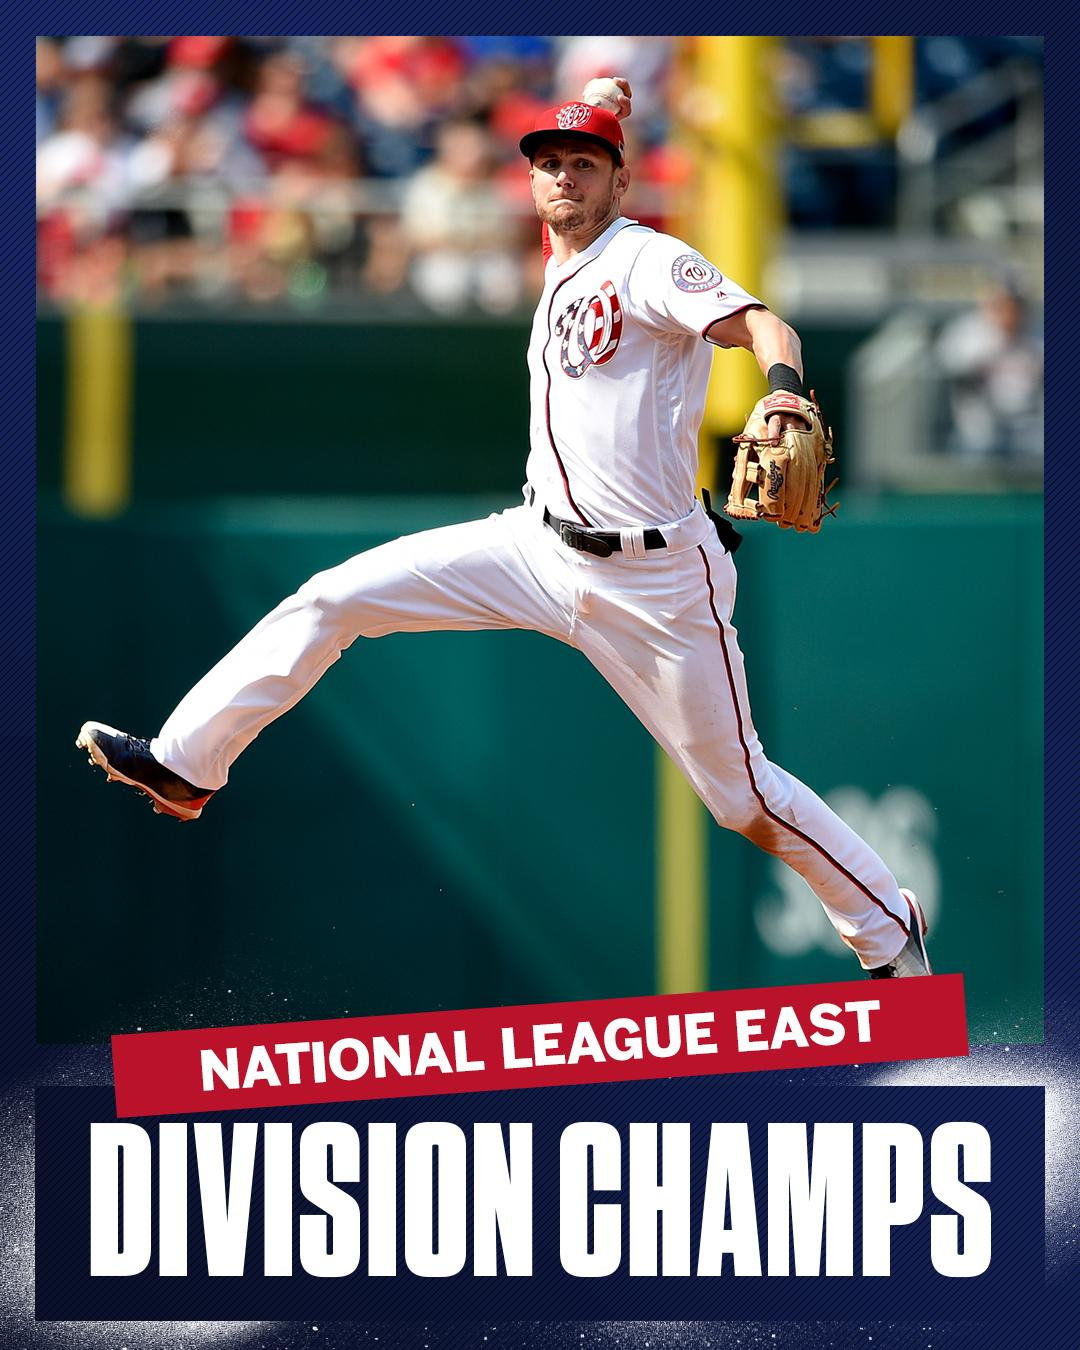 The Nationals are the first team in MLB to earn a playoff spot this season. https://t.co/ckwYfrTcZT